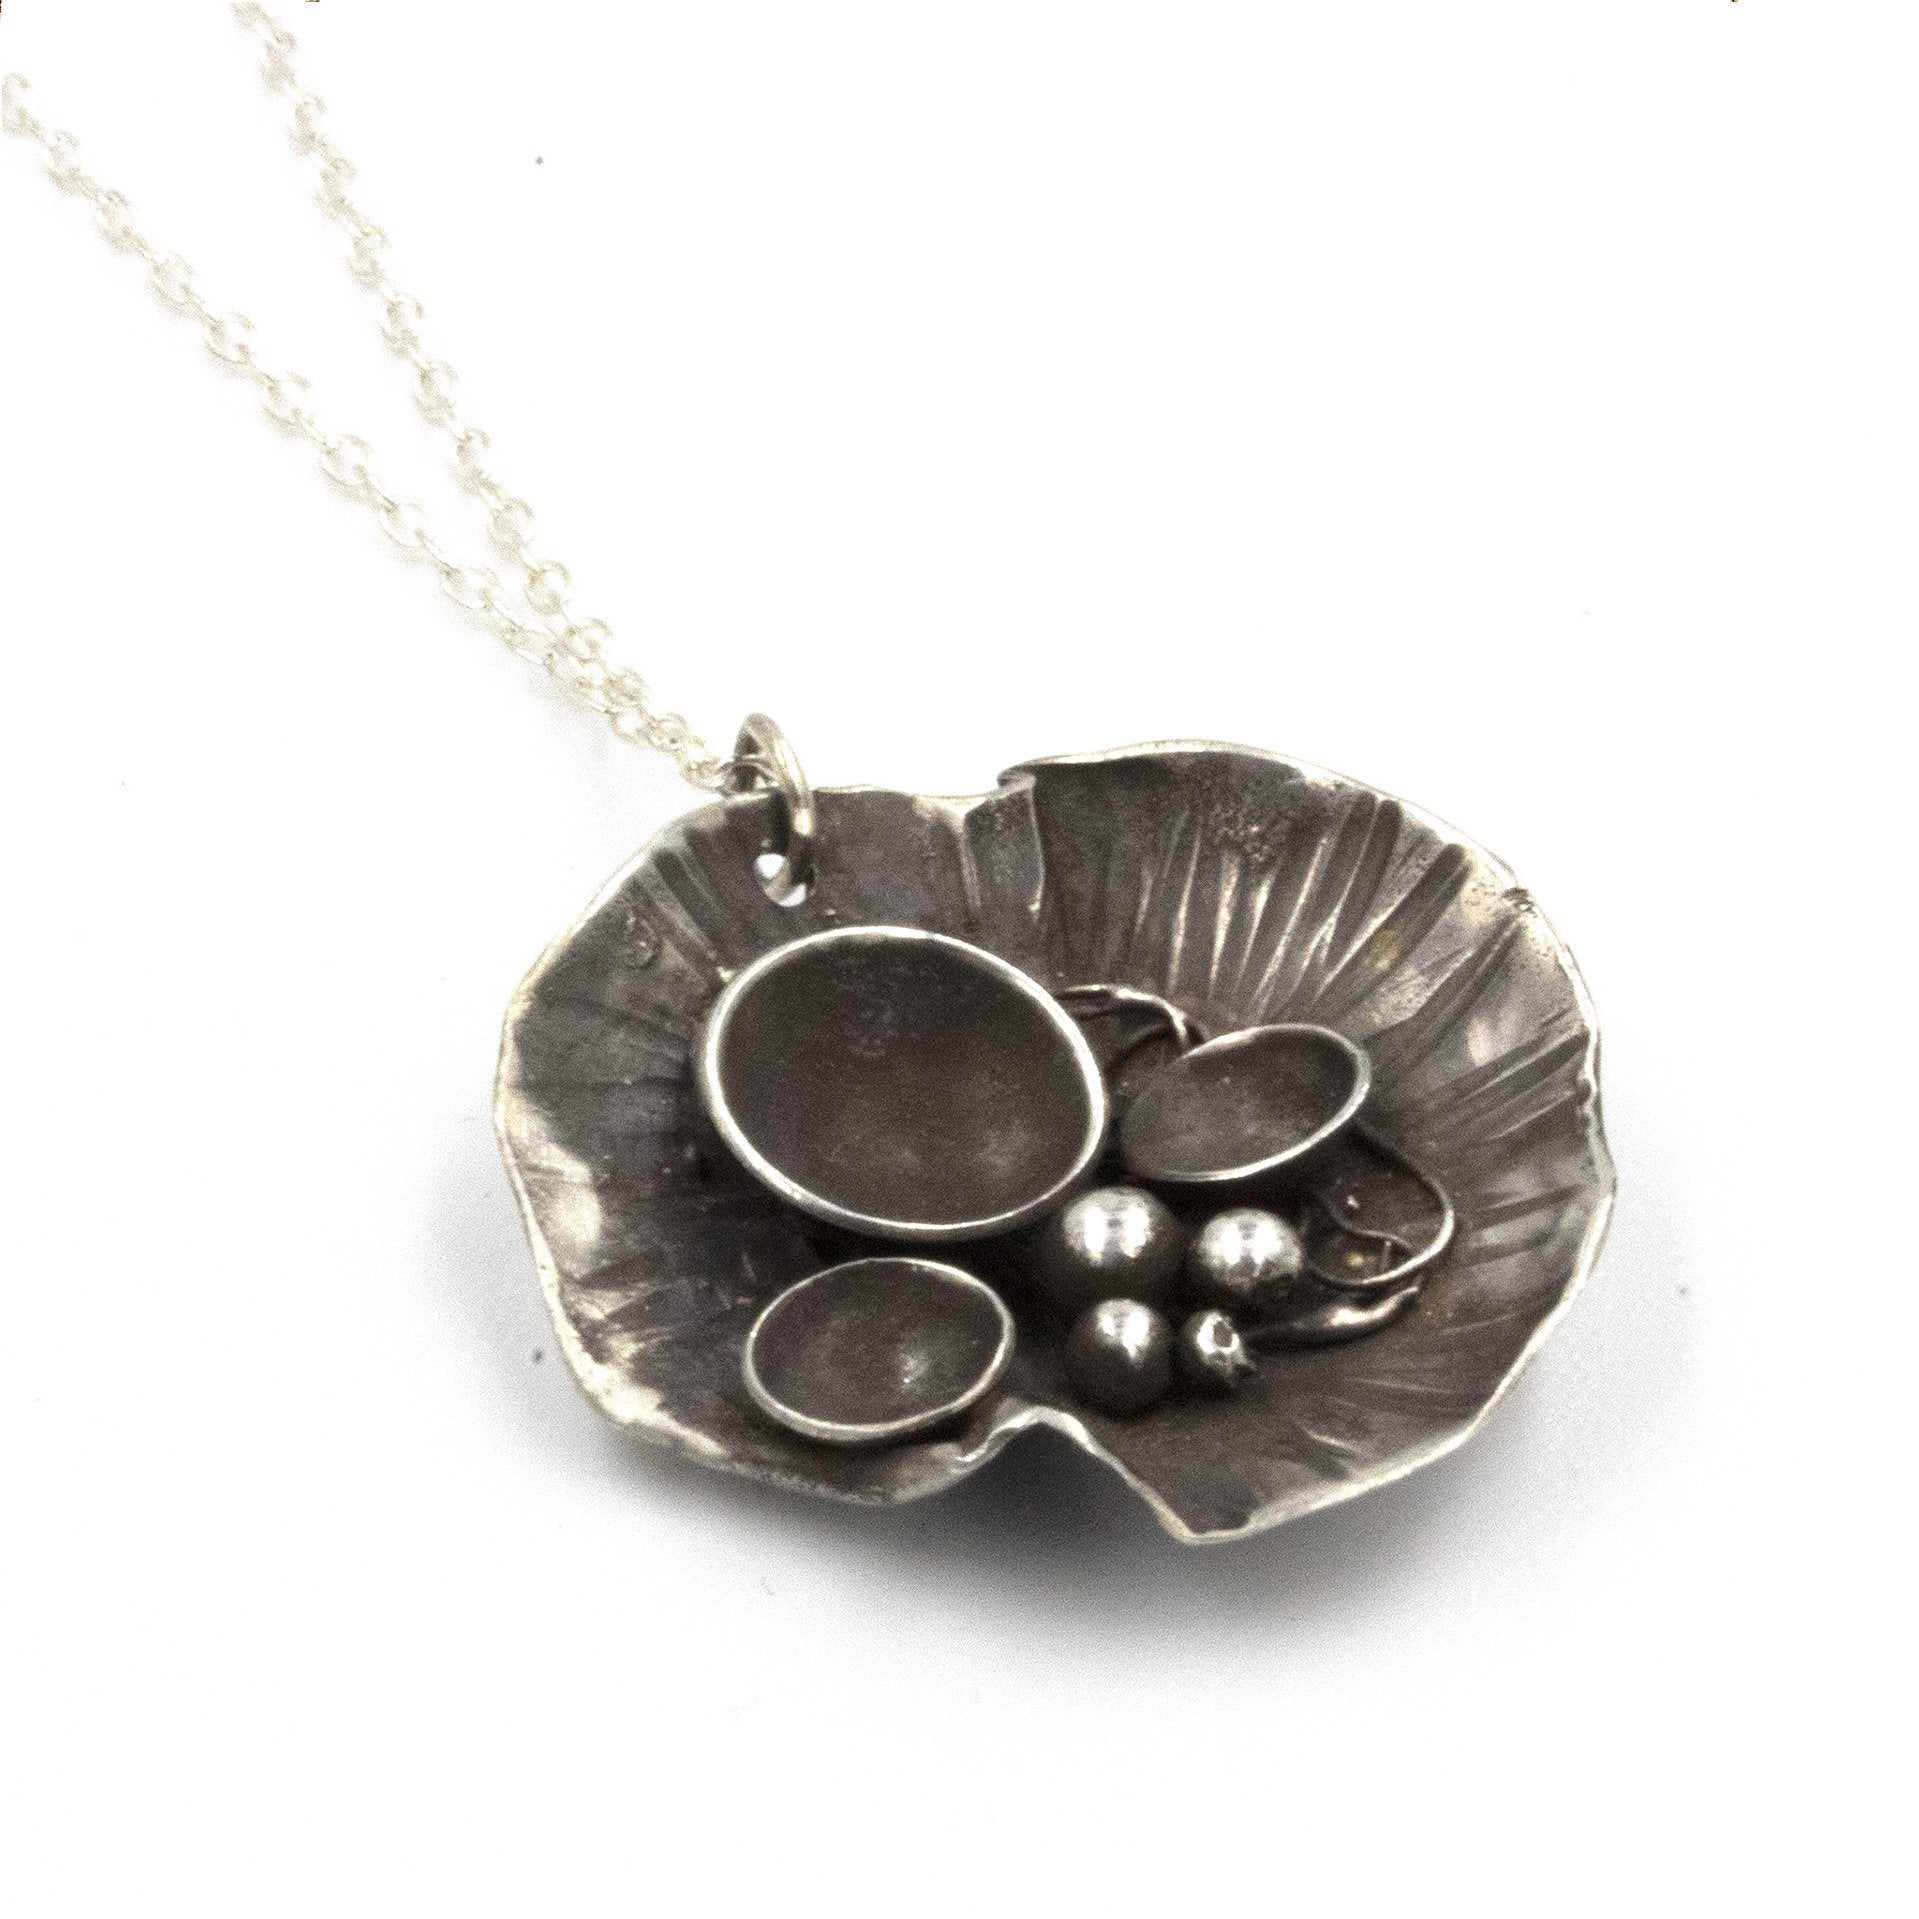 Handmade Rock Pool necklace, made in sterling silver, and inspired by rock pools on the Cornish Coast